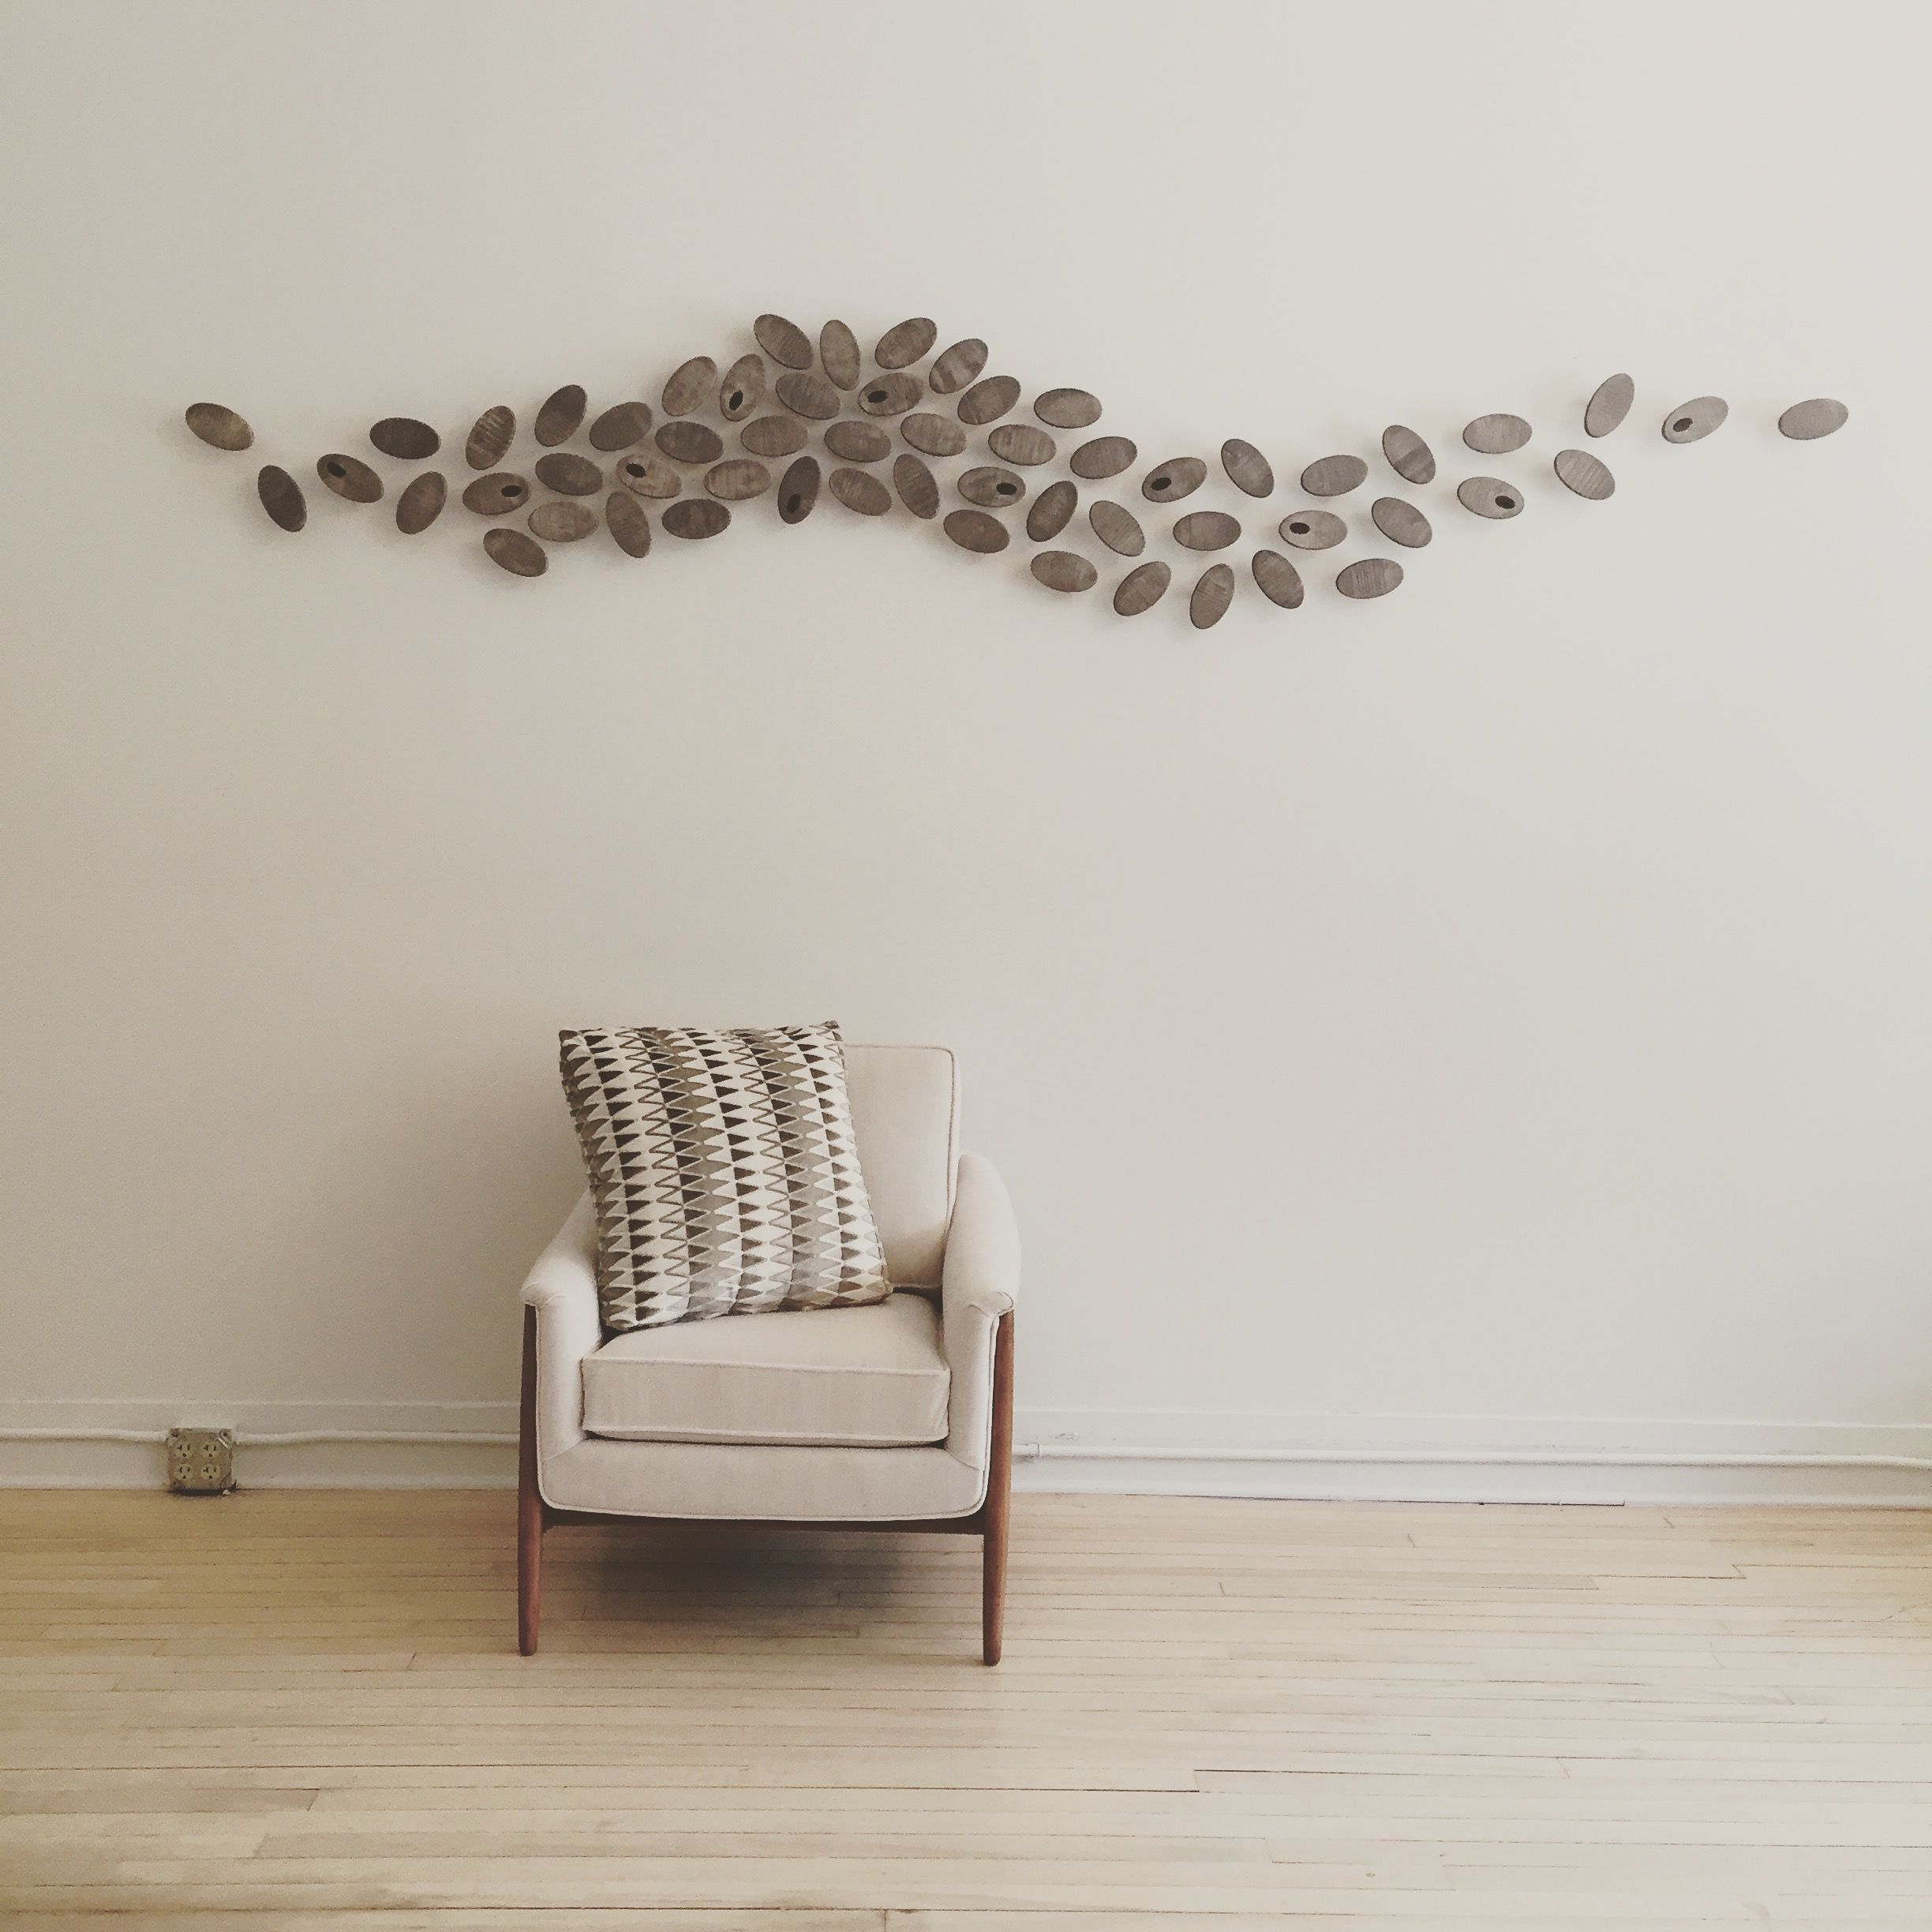 Besides their intriguing, biomimetic compositions, wall features by Susie Frazier can also have a high degree of functionality. This project features matching magnetic components so the interior designers who use it, can showcase papers or images during their business meetings. When not in use, it remains a compelling piece of art.